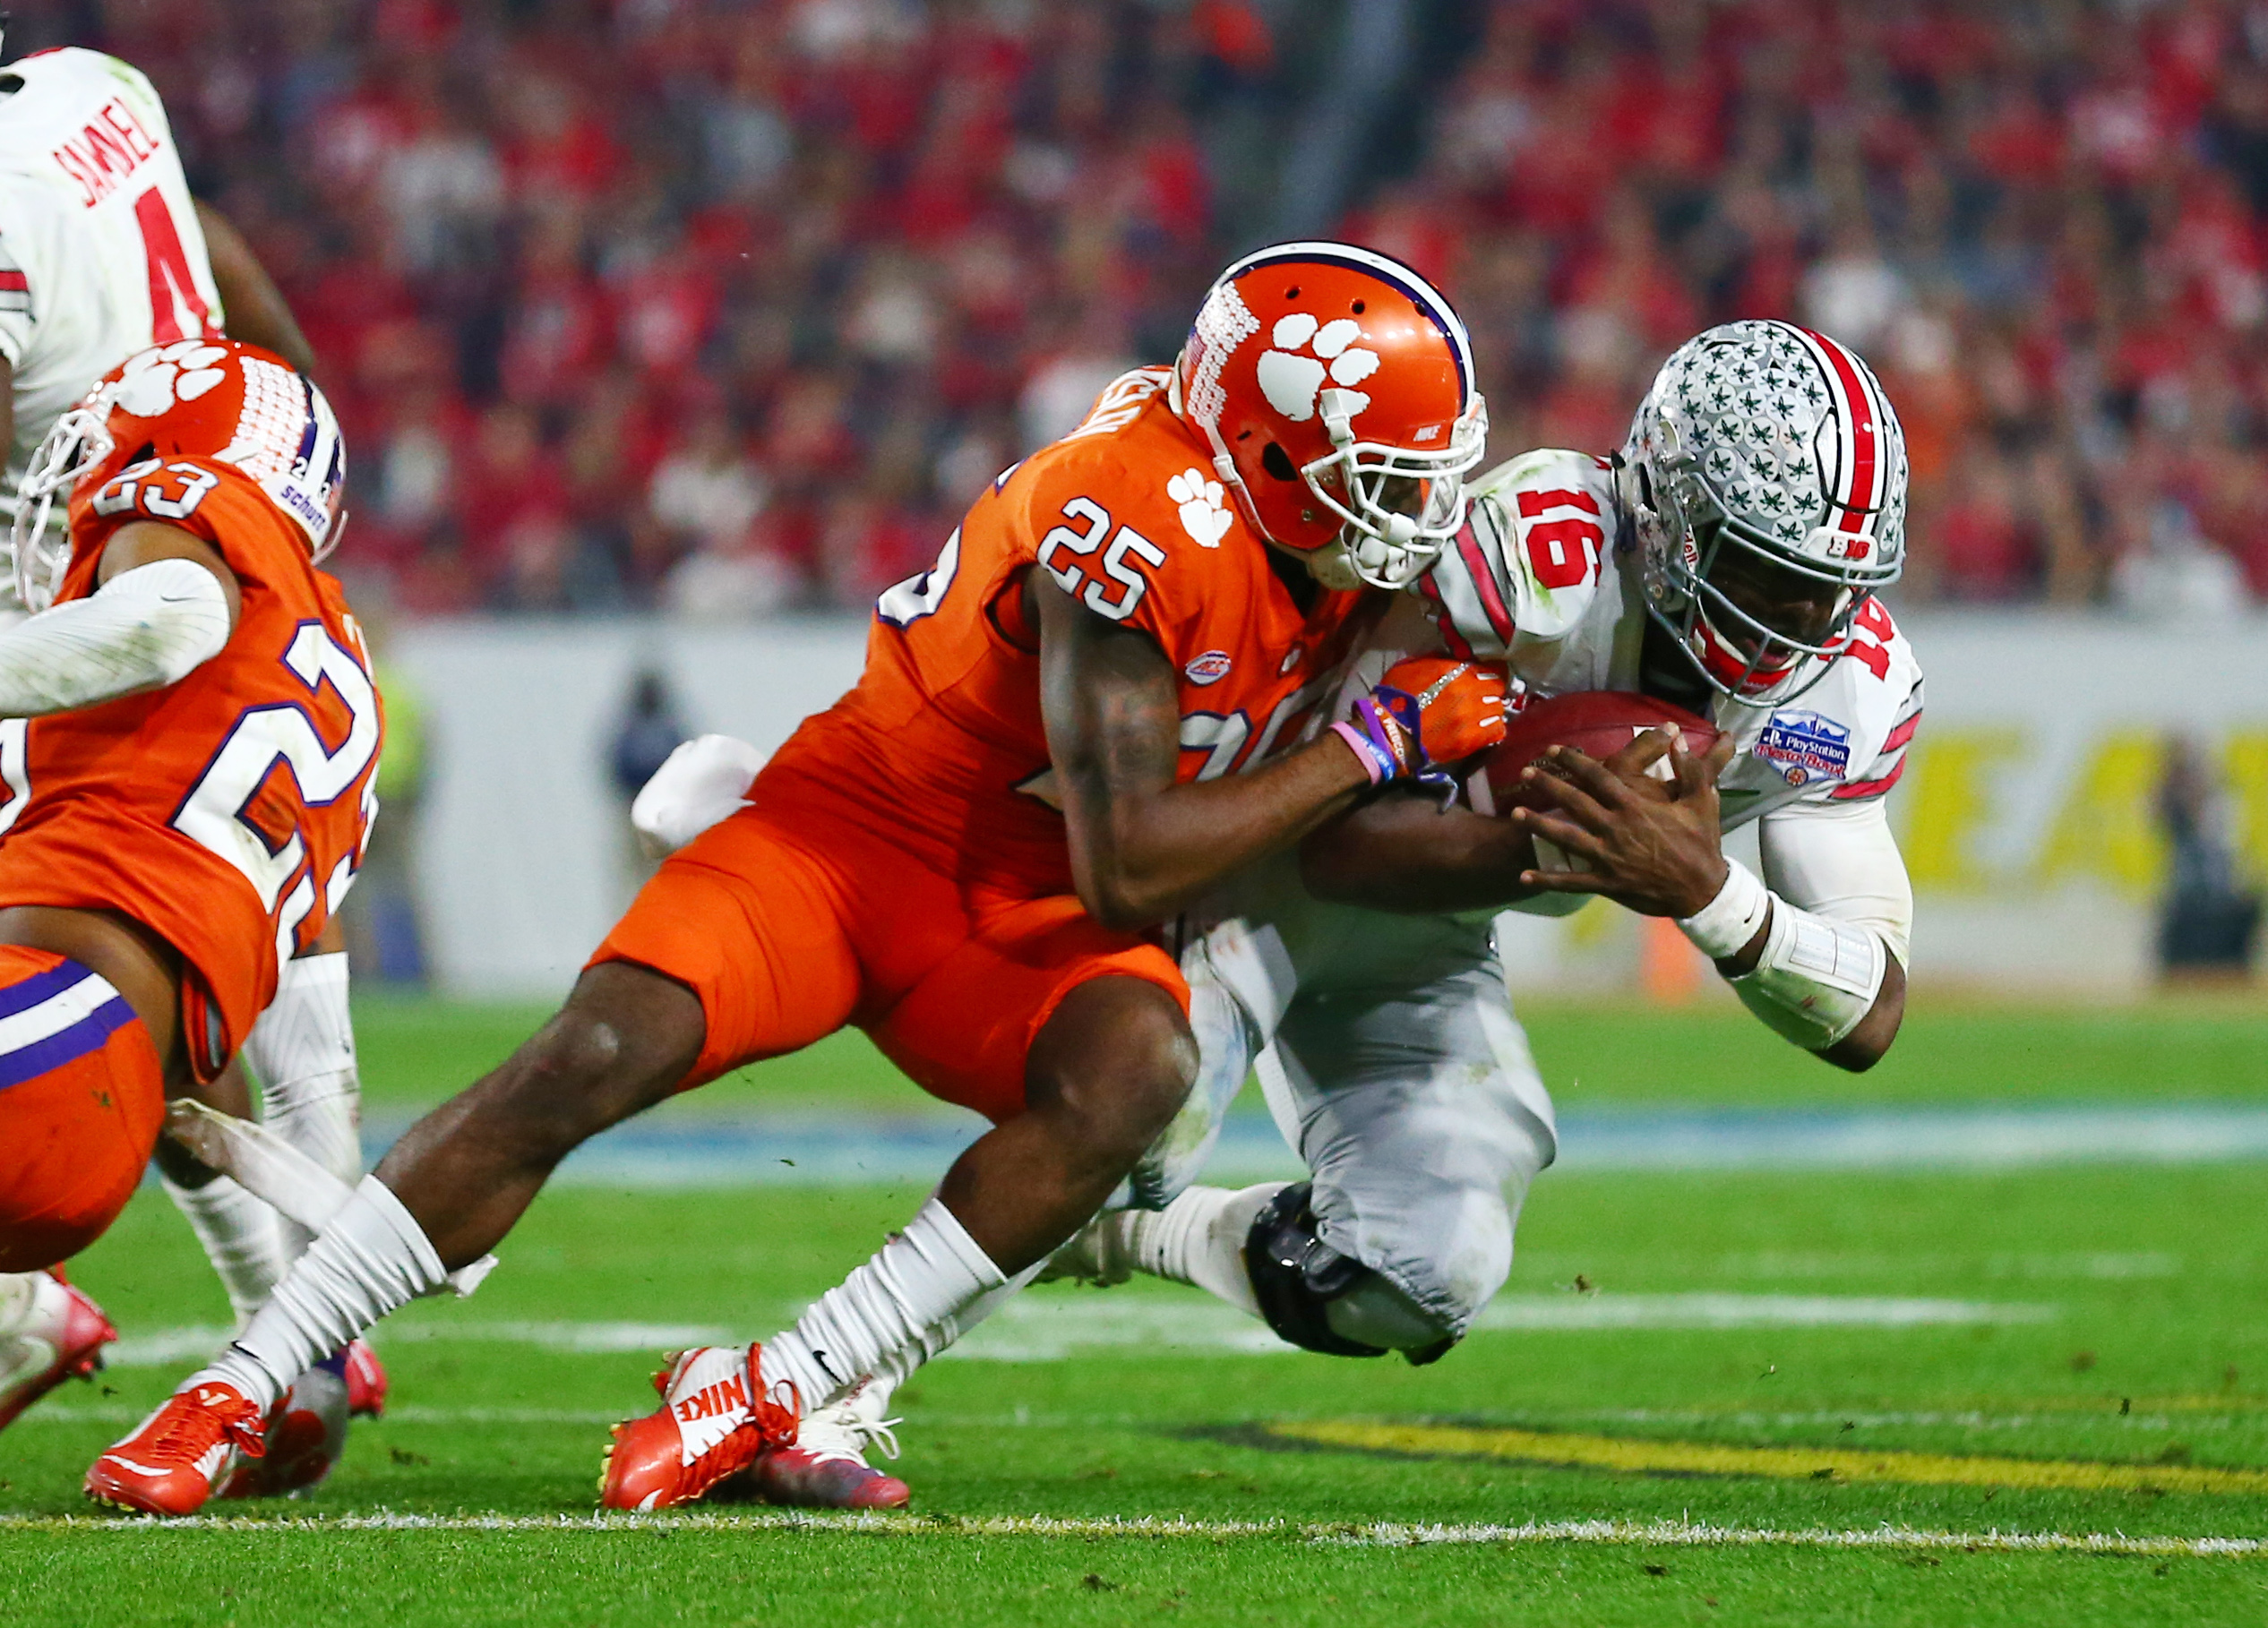 December 31, 2016; Glendale, AZ, USA; Clemson Tigers cornerback Cordrea Tankersley (25) sacks Ohio State Buckeyes quarterback J.T. Barrett (16) in the the 2016 CFP semifinal at University of Phoenix Stadium. Mandatory Credit: Mark J. Rebilas-USA TODAY Sports